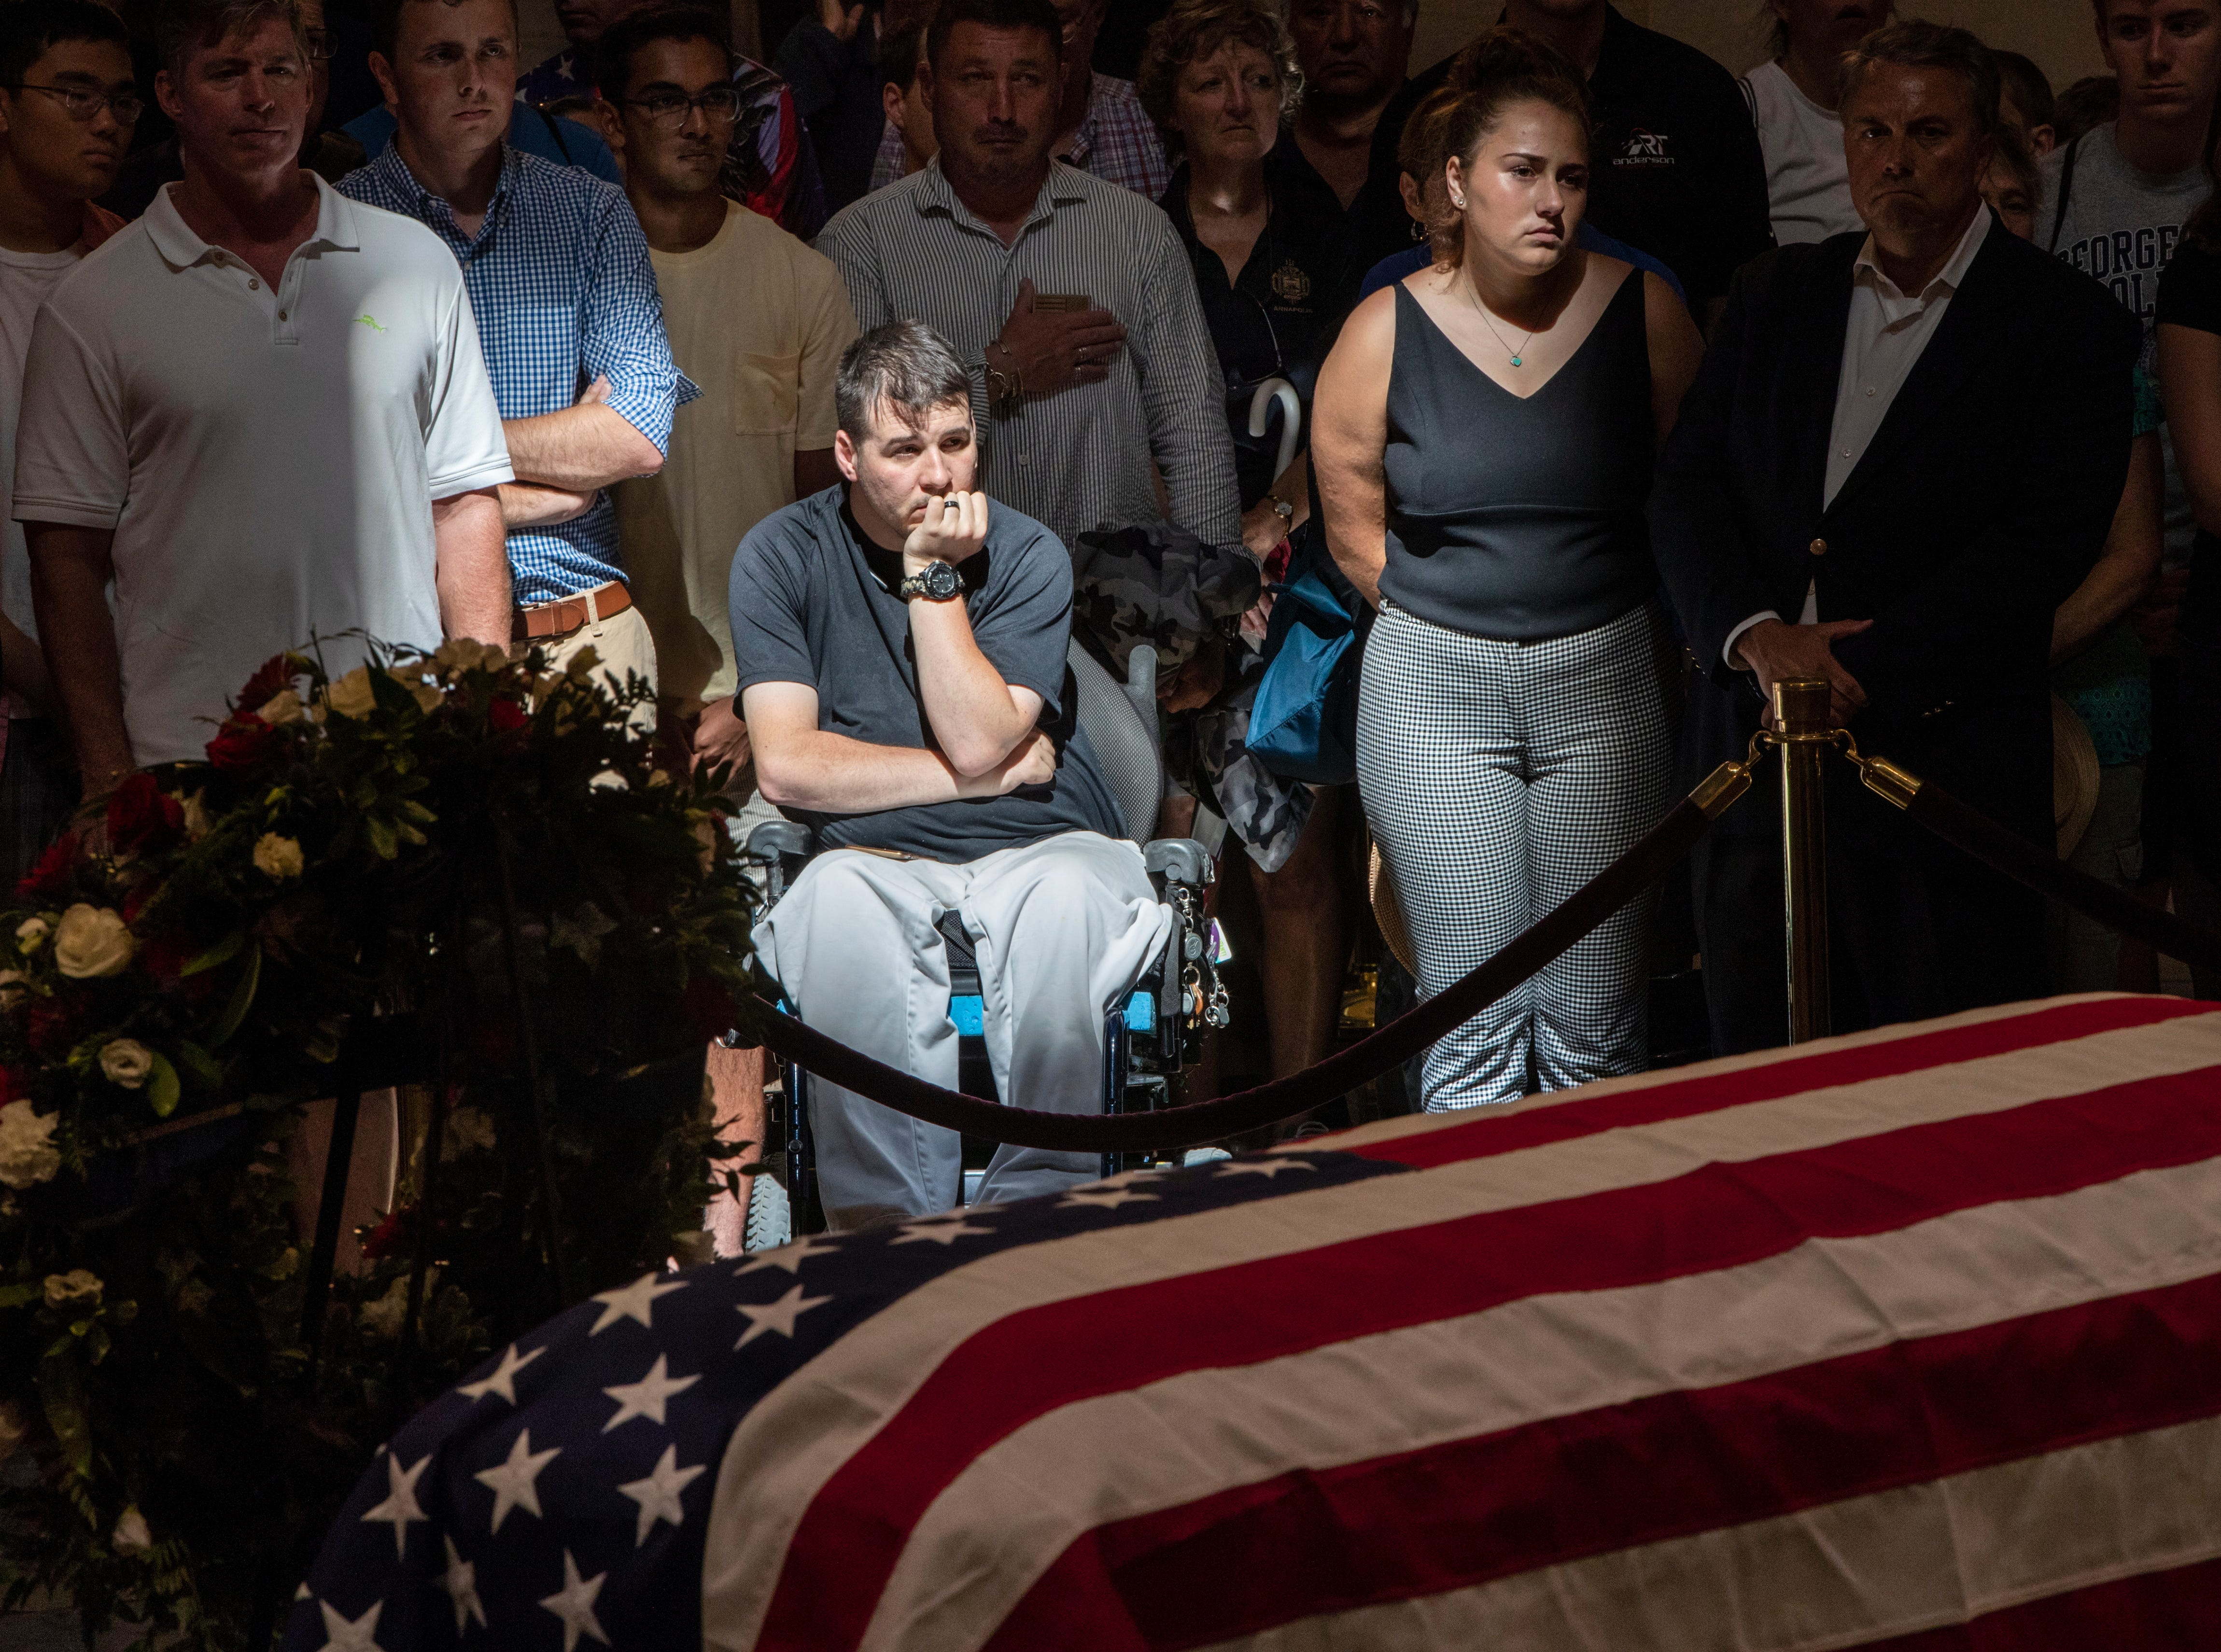 Derek Anderson (center) of Arlington, Virginia, pays his respects with other members of the public at the flag-draped casket of Sen. John McCain of Arizona in the U.S. Capitol rotunda in Washington Aug. 31, 2018.